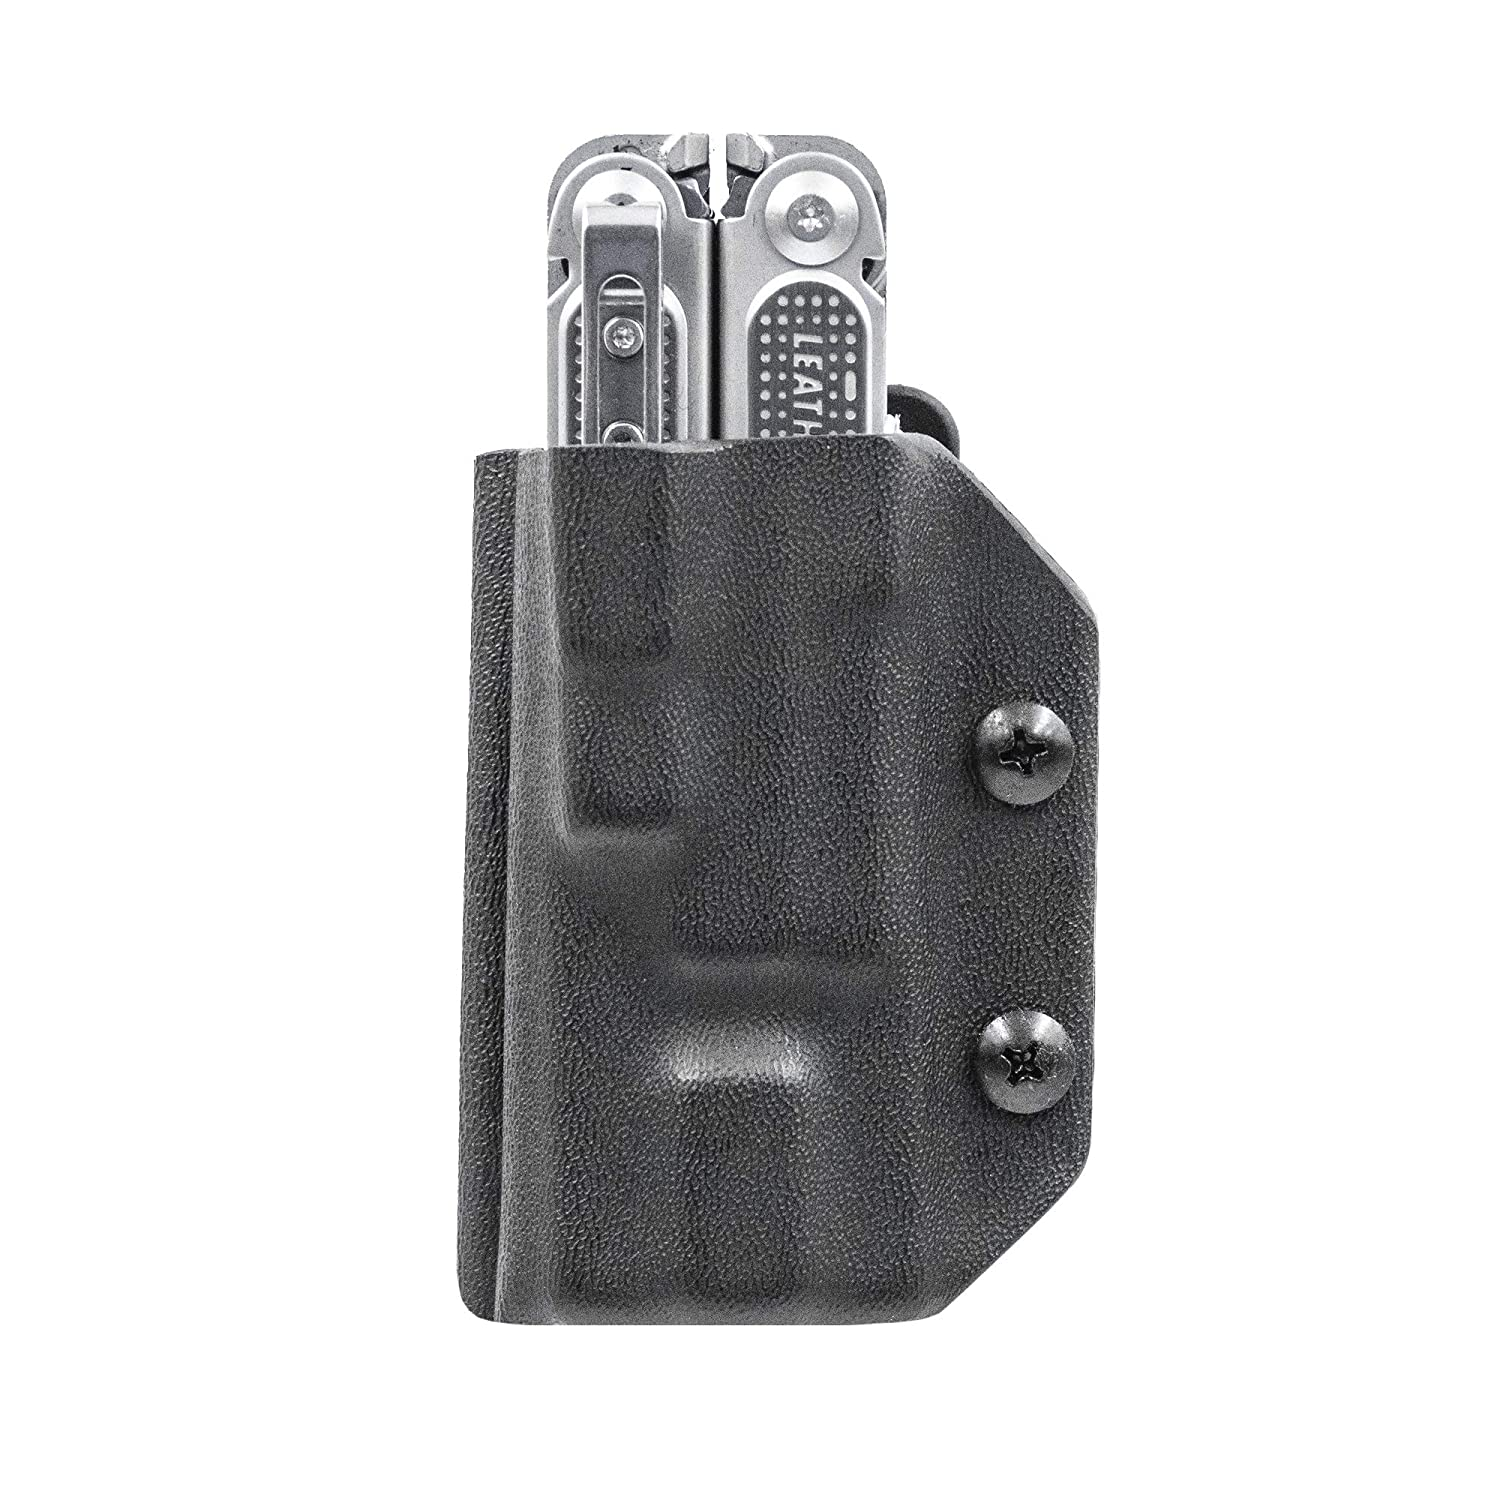 Clip Carry Kydex Multitool Sheath for LEATHERMAN FREE P4 – Made in USA Multi-tool not included EDC Multi Tool Holder Holster Cover Black